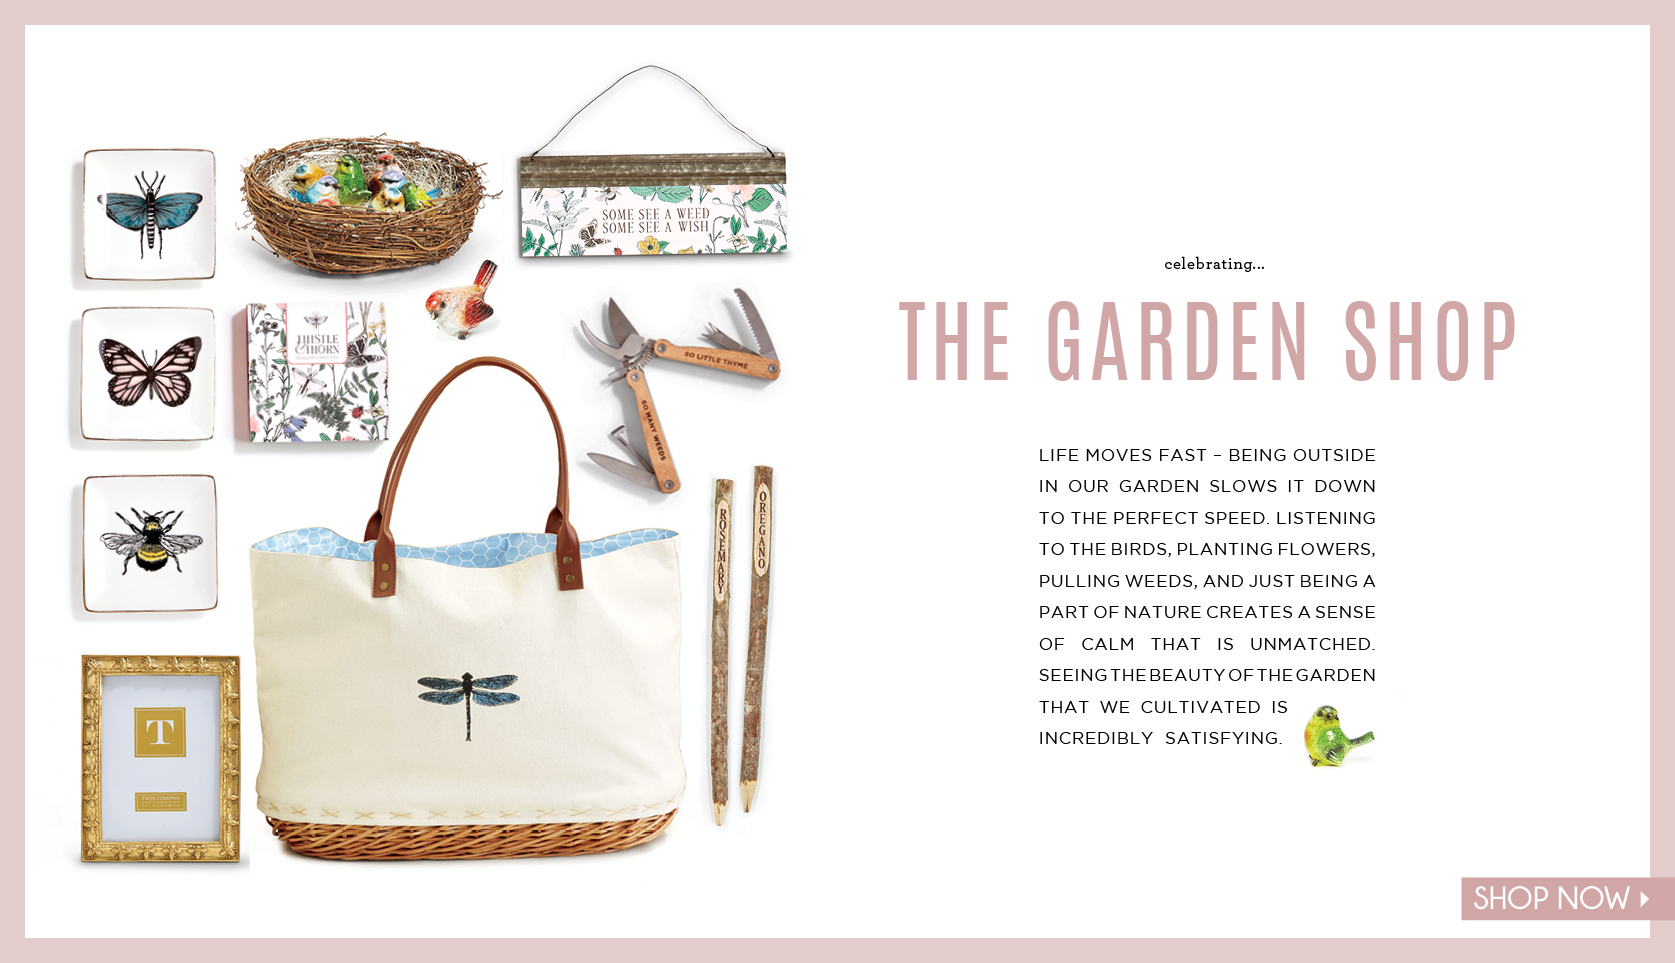 The Garden Shop Collection image